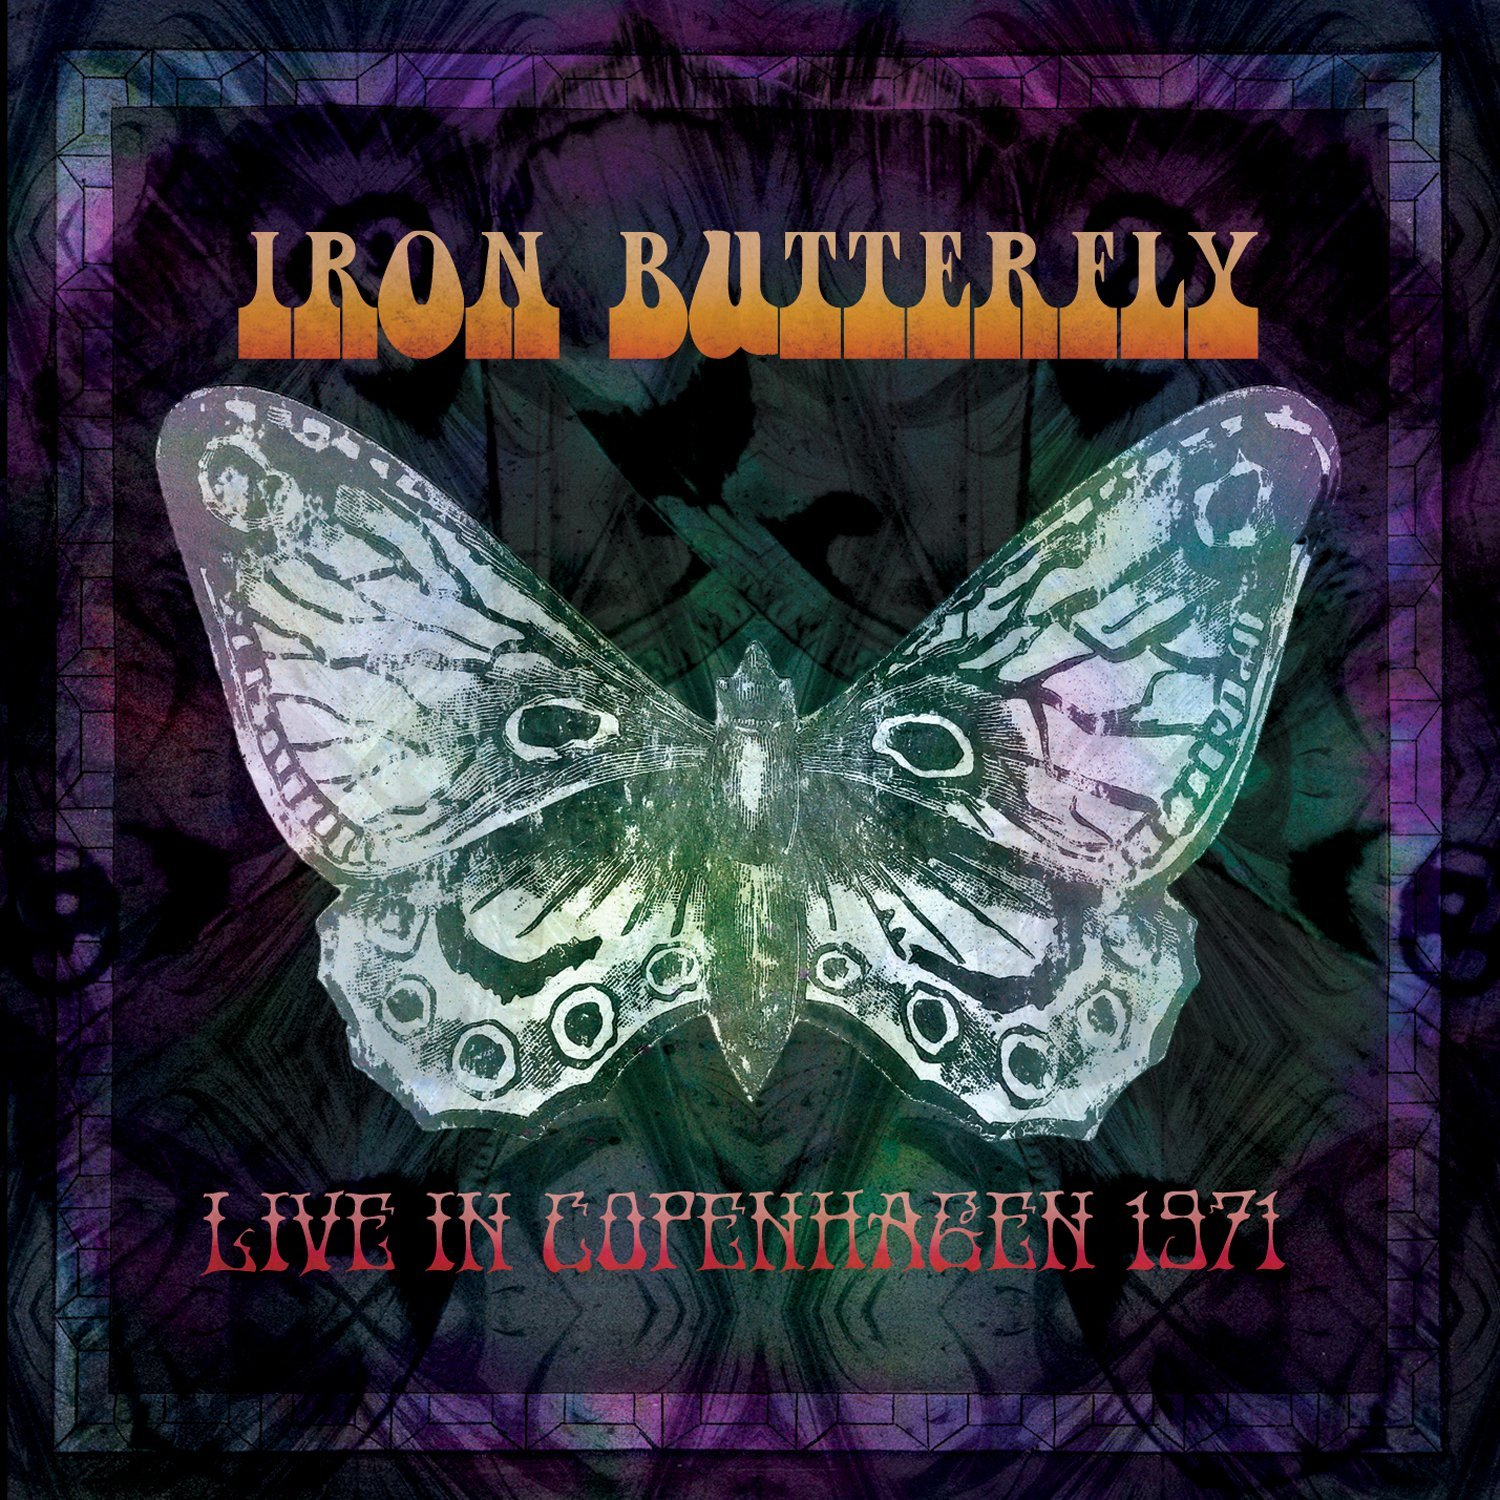 Live in Copenhagen 1971 Cover art